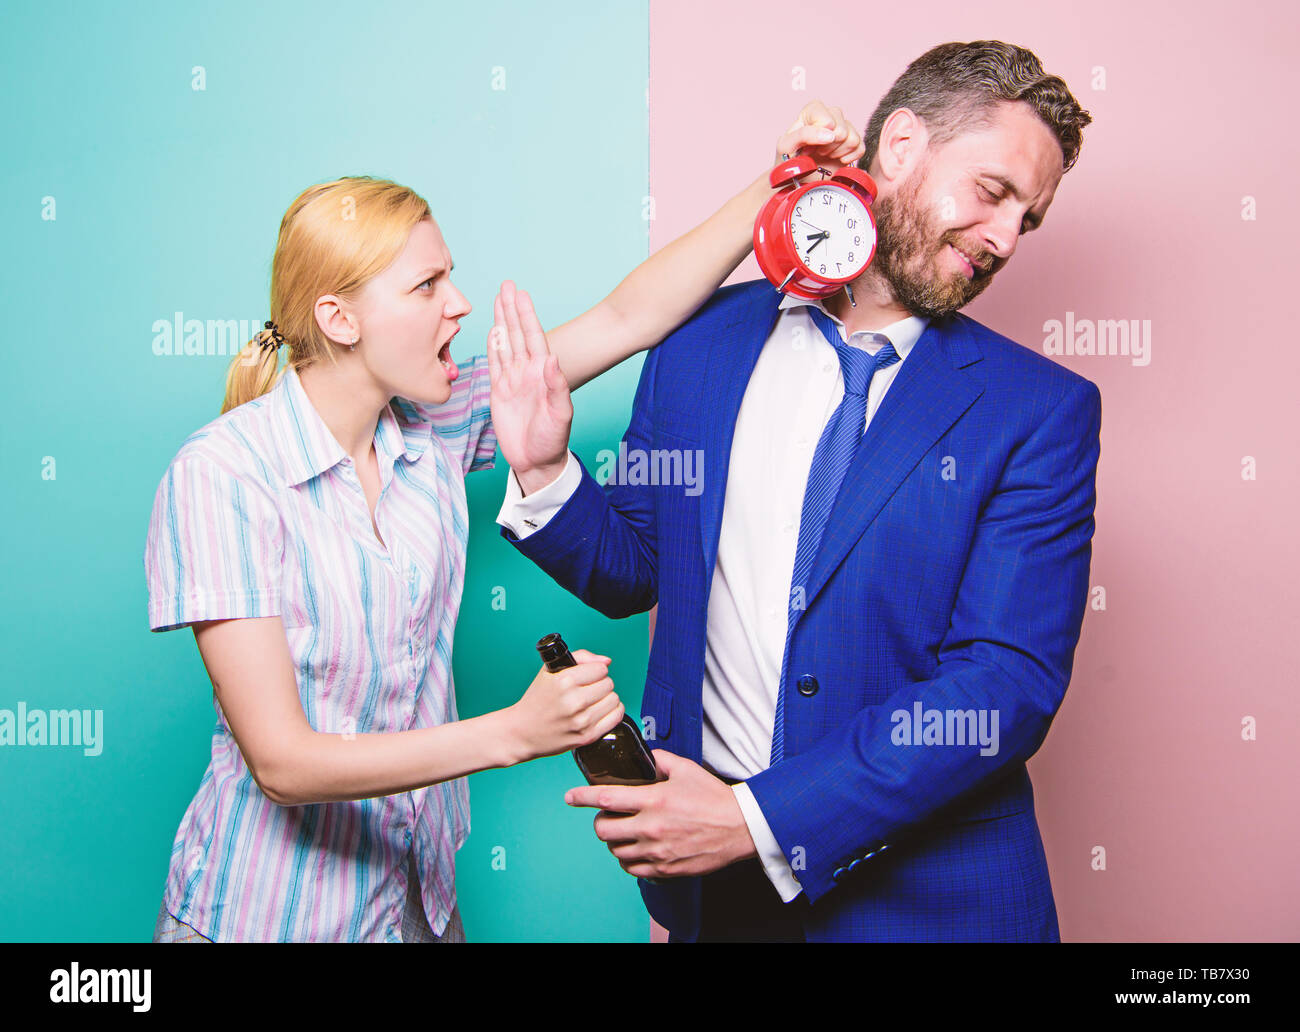 What time is it. Businessman with alcohol bottle and woman with alarm clock. Man suffering from alcoholism. Angry wife meeting drunk husband late at home. Addictive alcoholism or alcohol abuse. - Stock Image